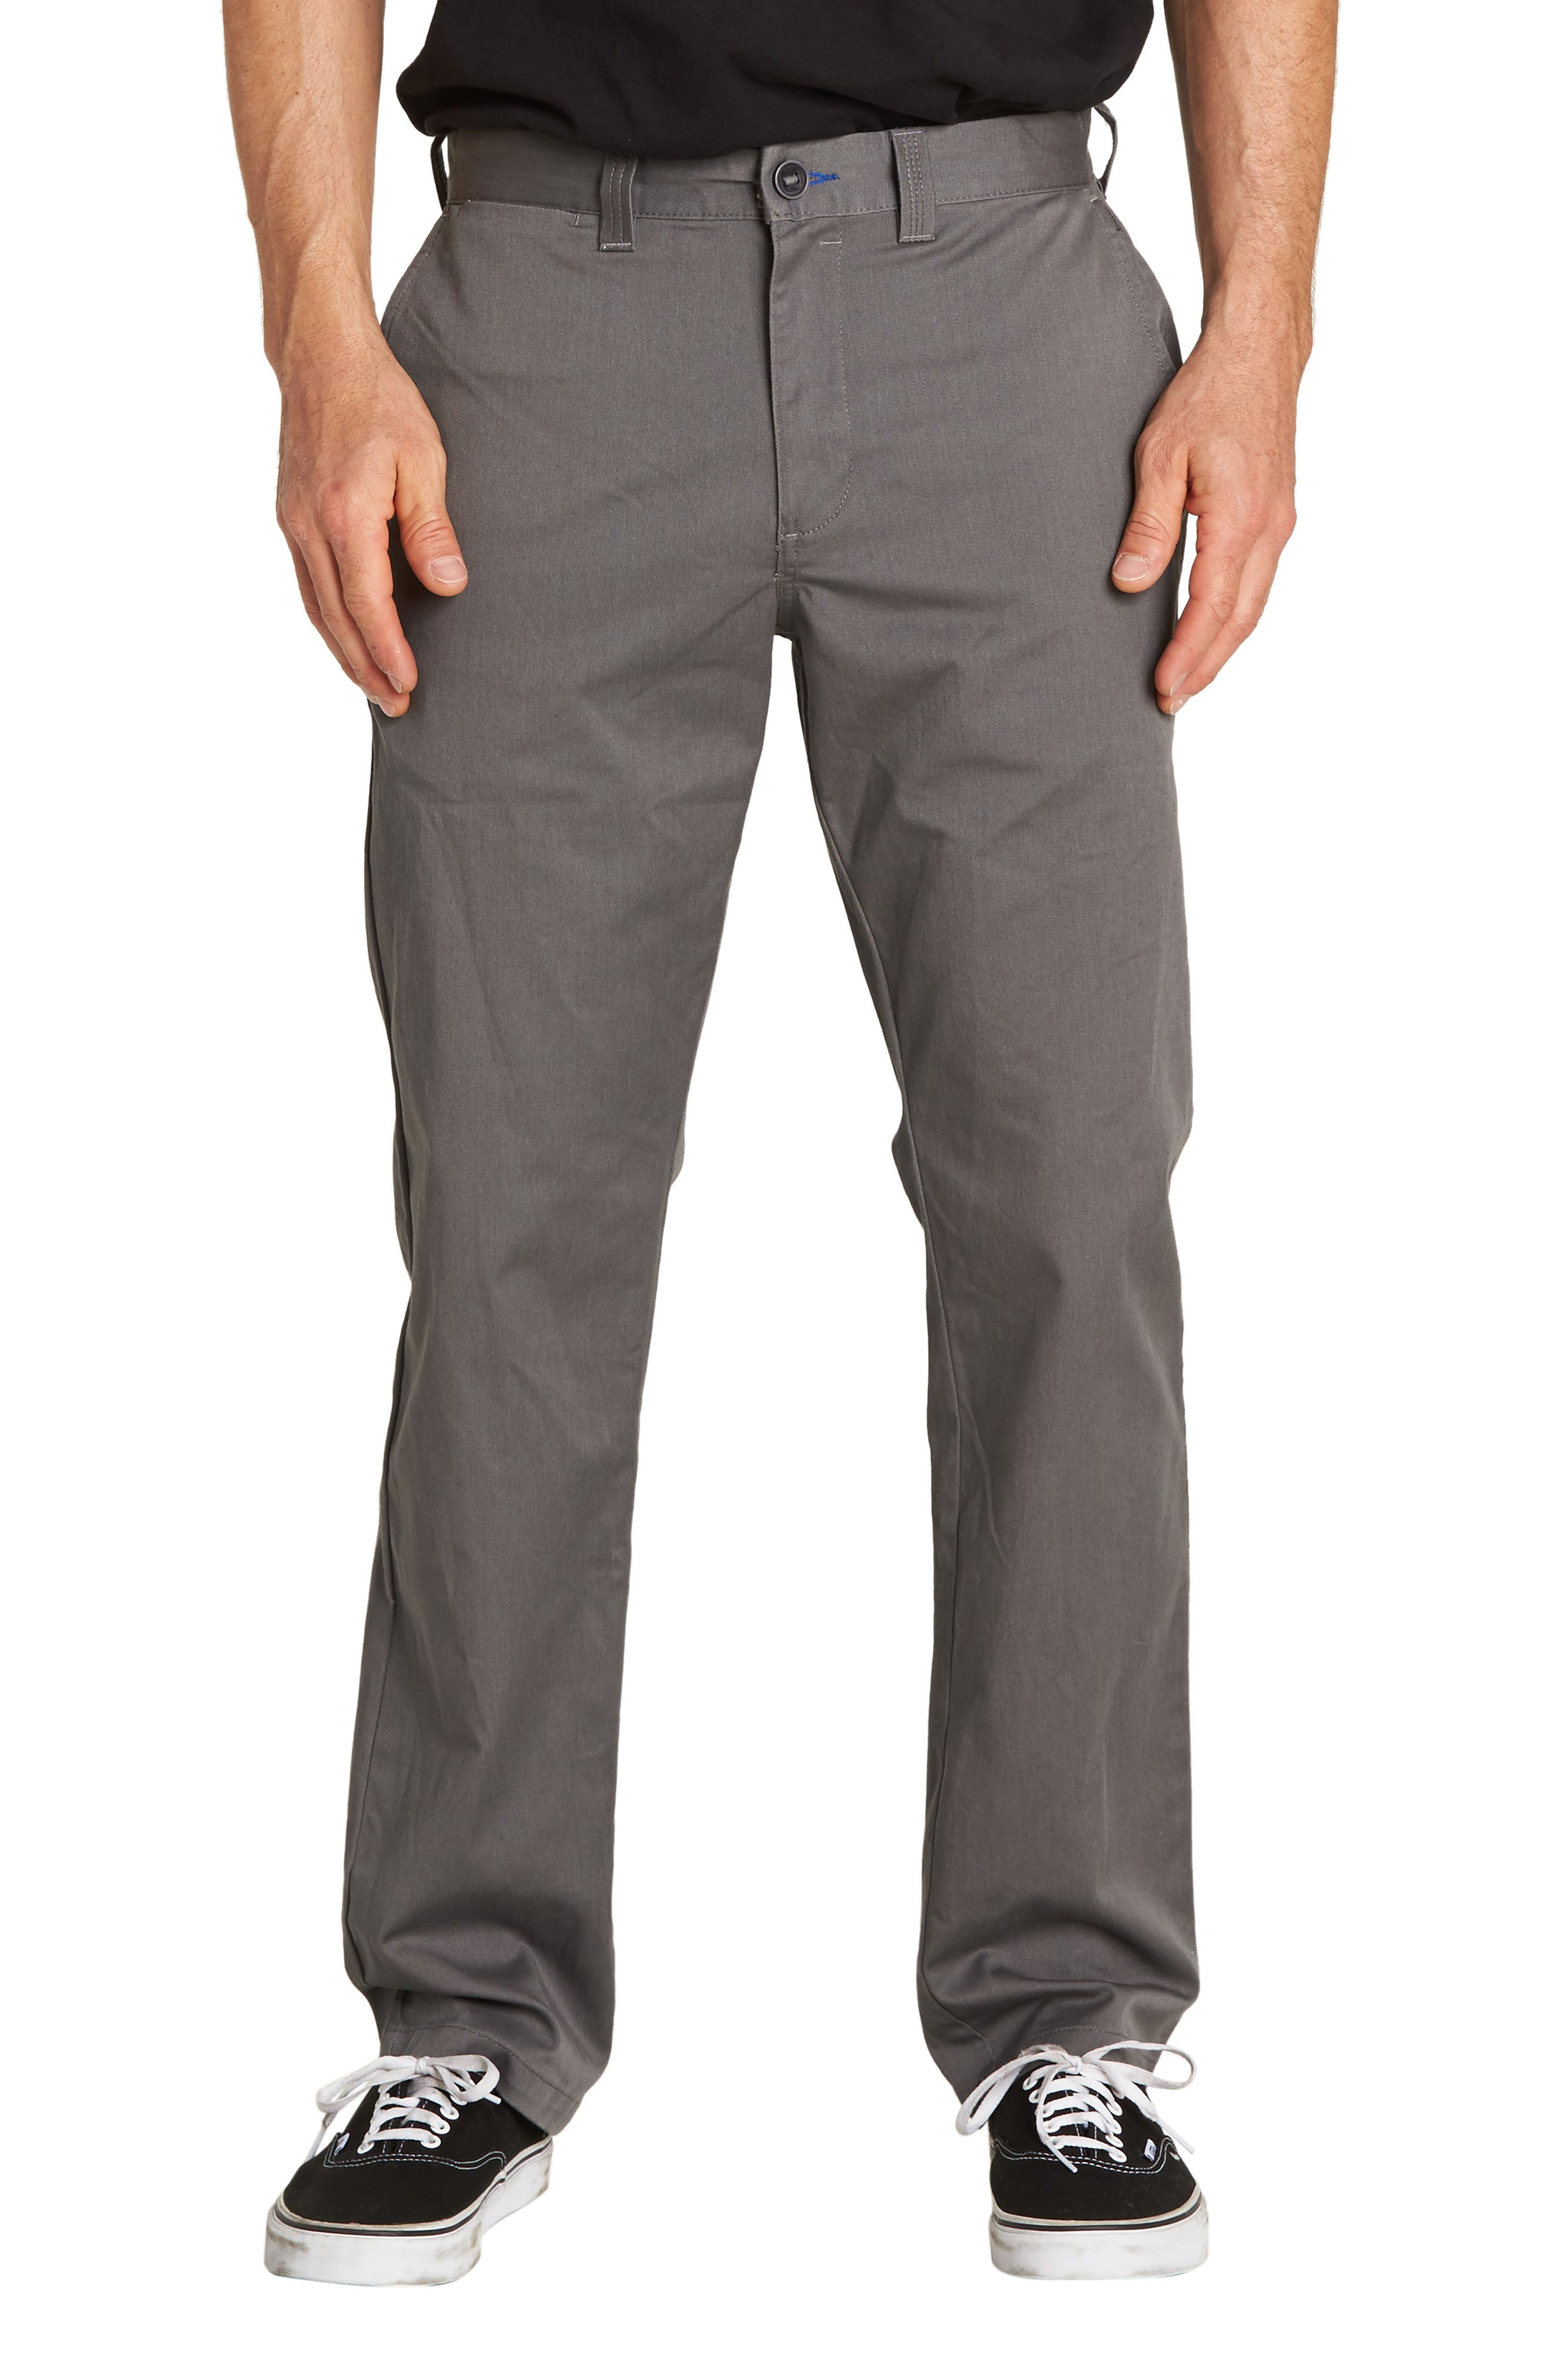 Carter Slim Stretch Chino Pants,                             Main thumbnail 1, color,                             PEWTER